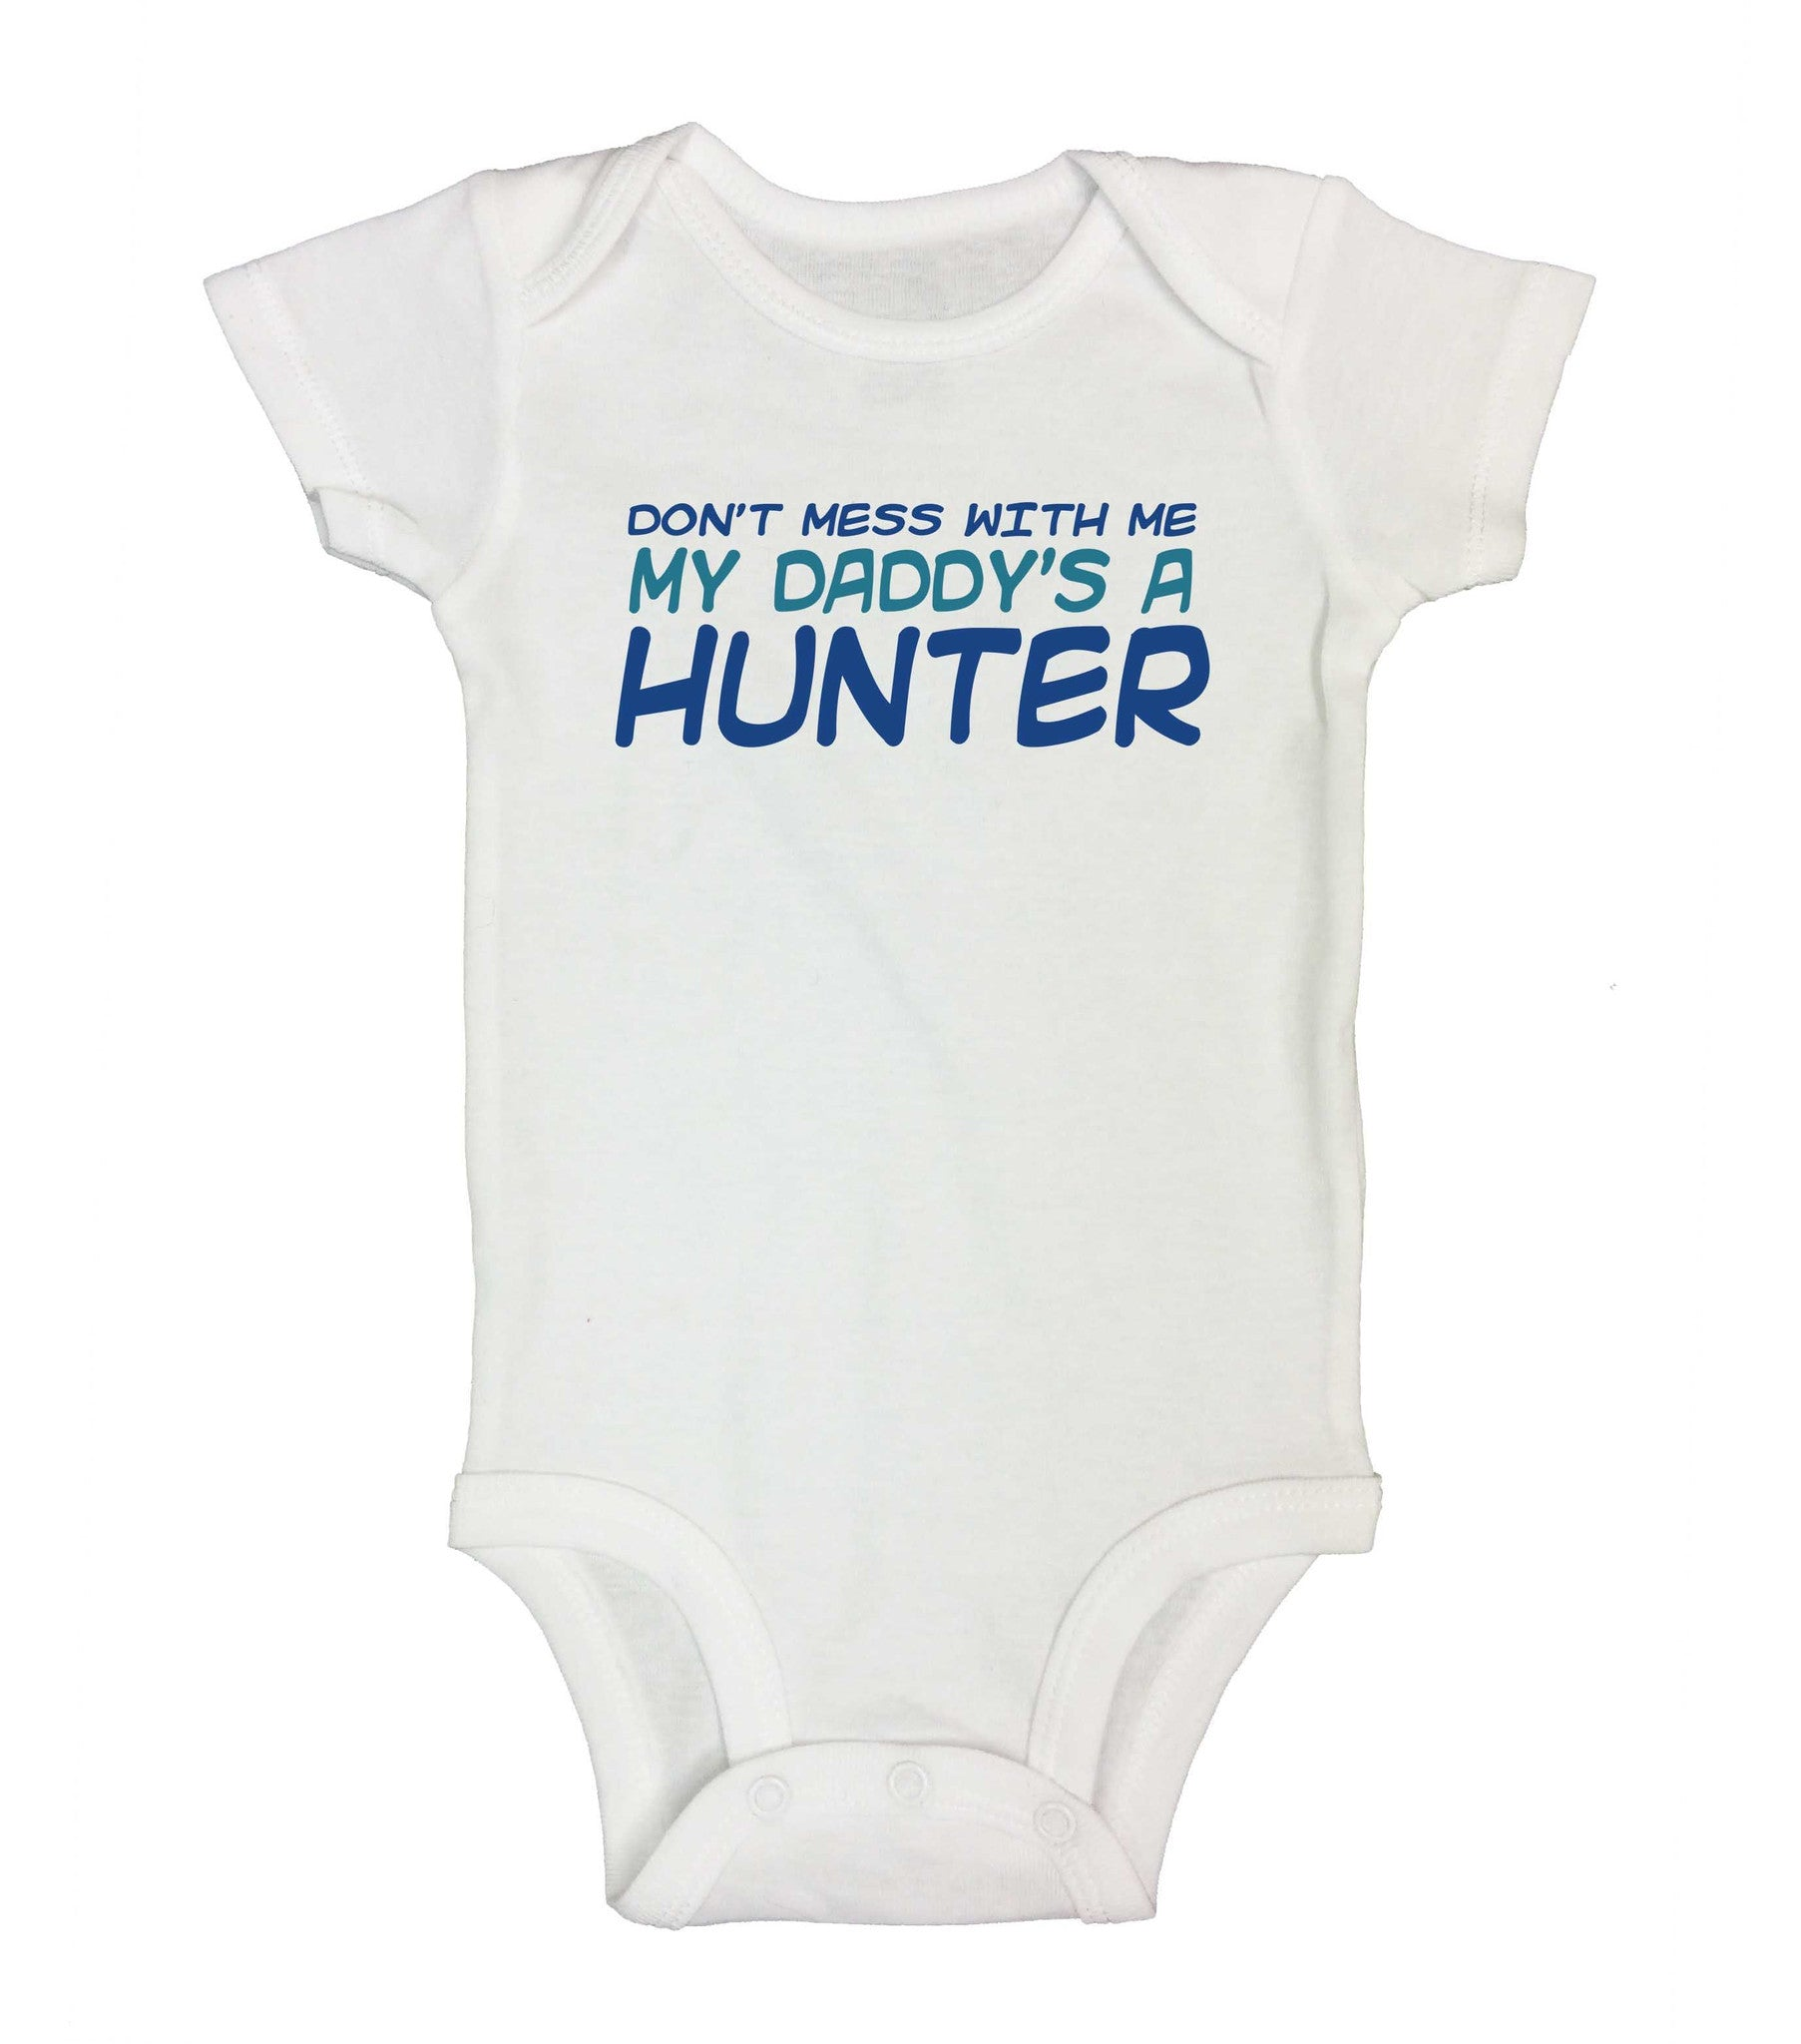 Don't Mess With Me My Daddy's A Hunter Funny Kids Onesie - B222 - Funny Shirts Tank Tops Burnouts and Triblends  - 2